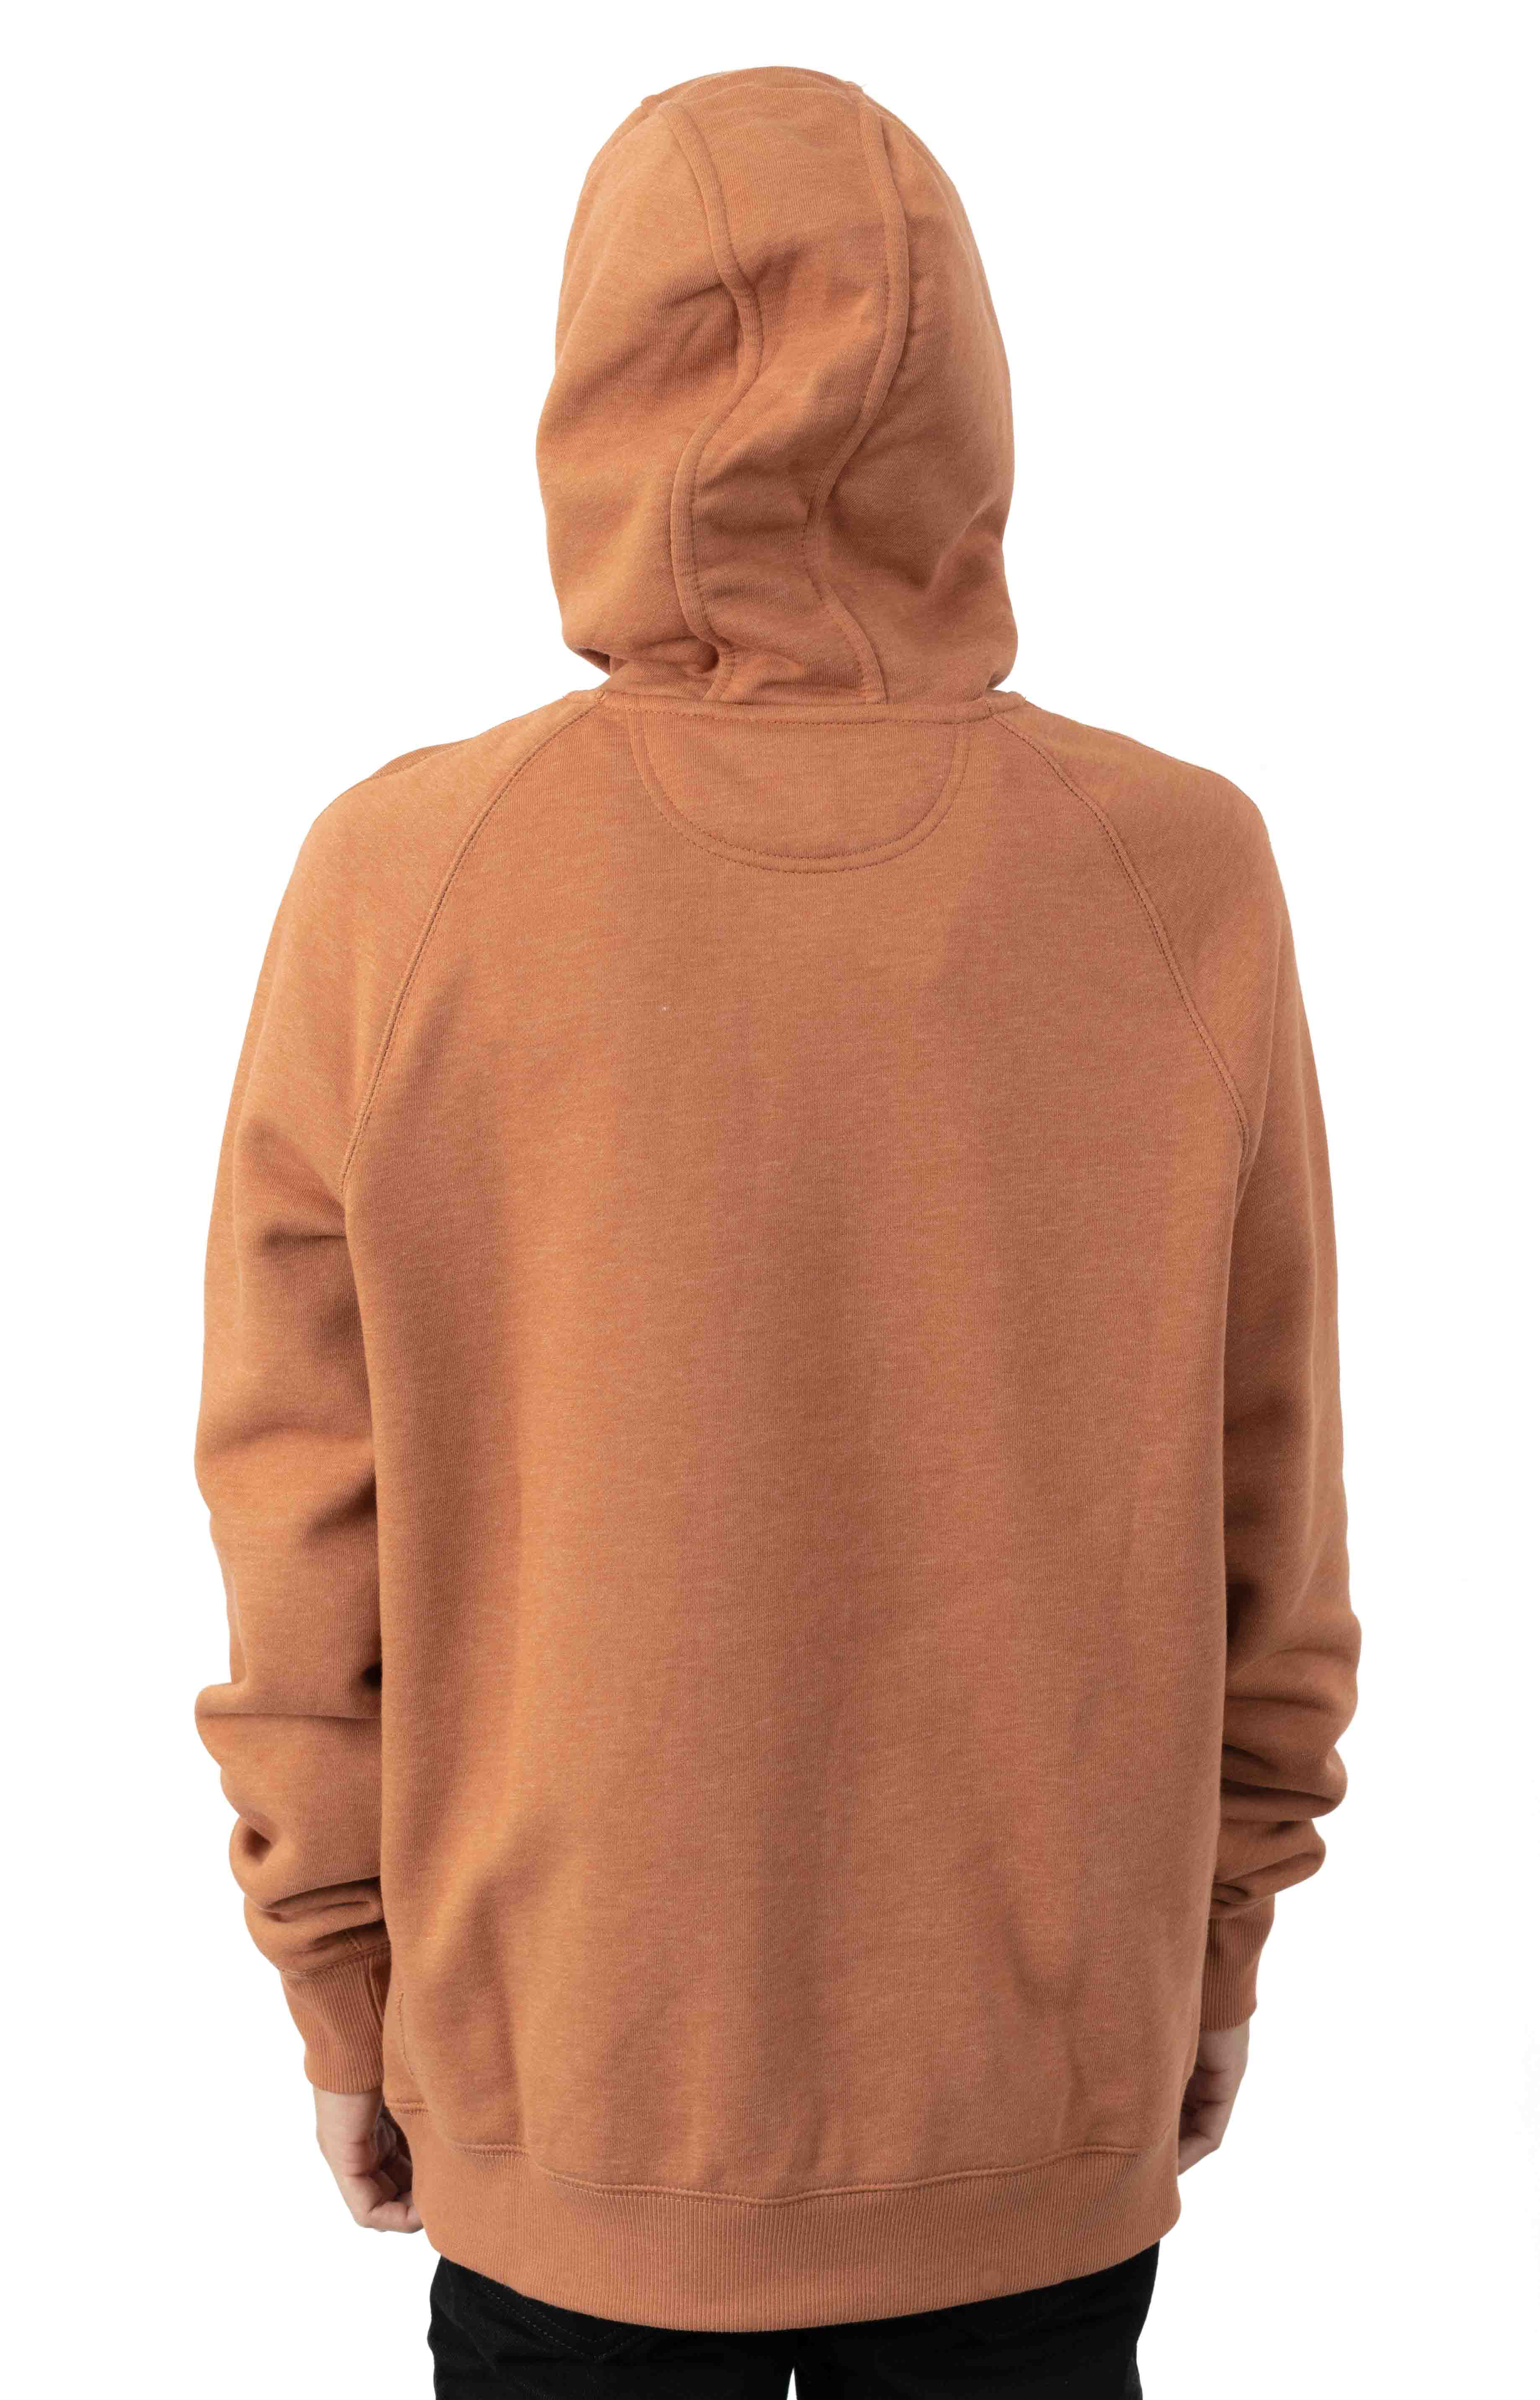 (103873) Force Delmont Signature Graphic Pullover Hoodie - Copper Heather  3